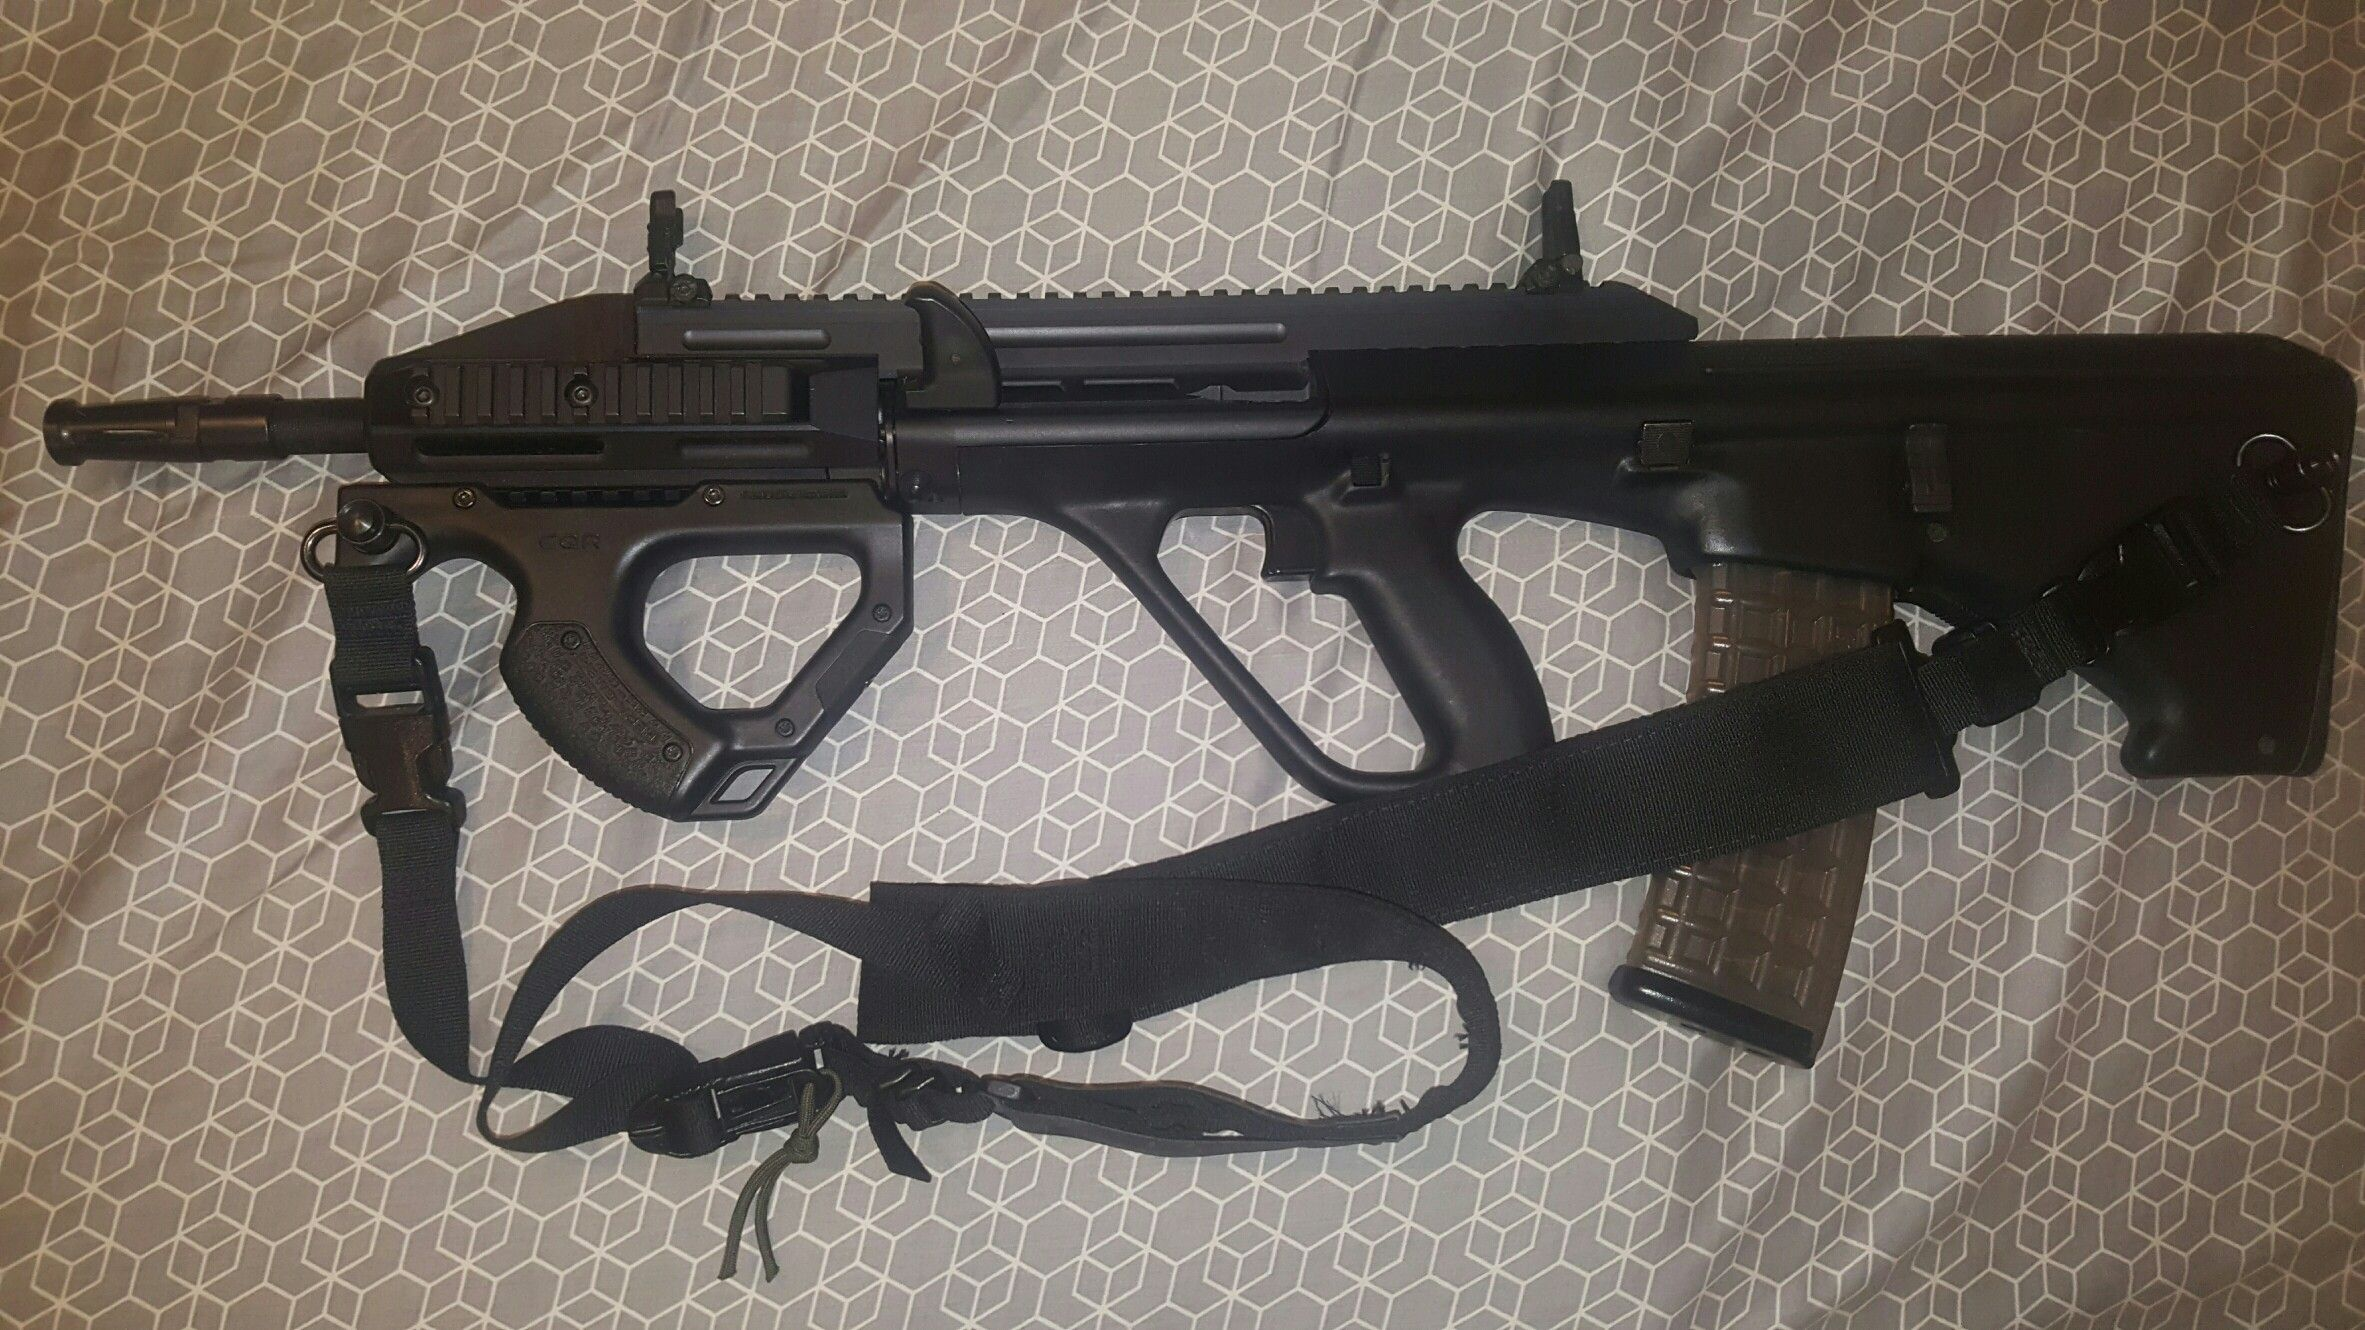 Hera arms cqr page 1 ar15 com - My Steyr Aug A3 Cqc With Hera Arms Cqr Foregrip Still A Work In Progress